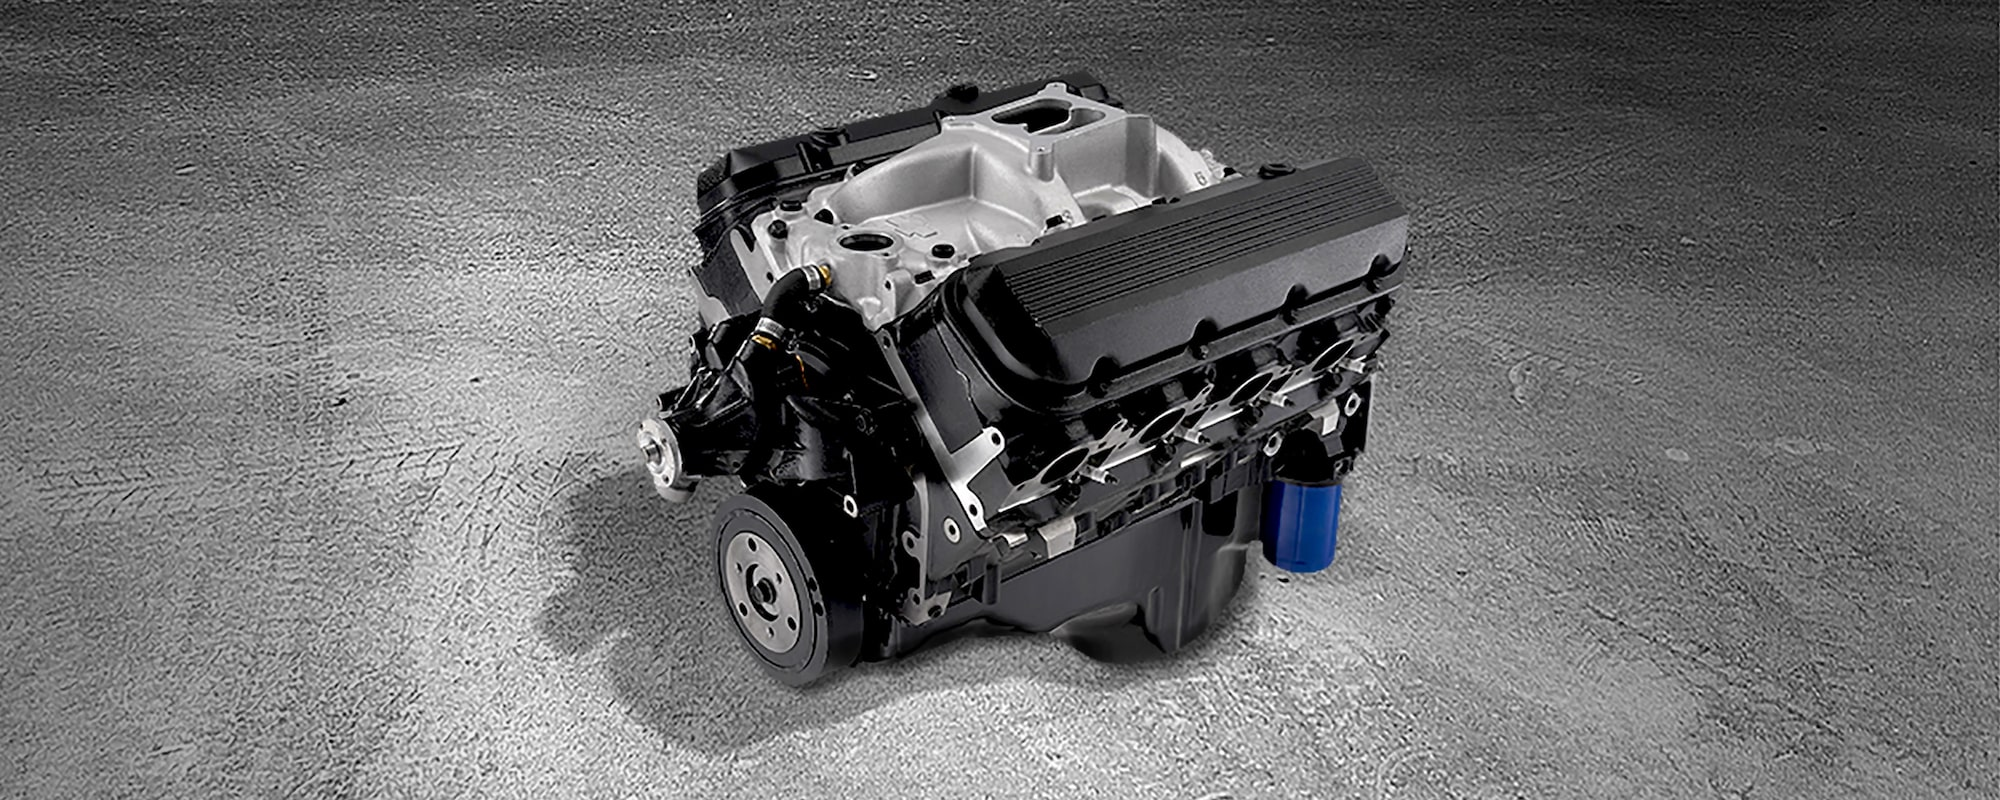 medium resolution of 502 ho big block crate engine chevrolet performance 2 4 twin cam engine and trans bolts